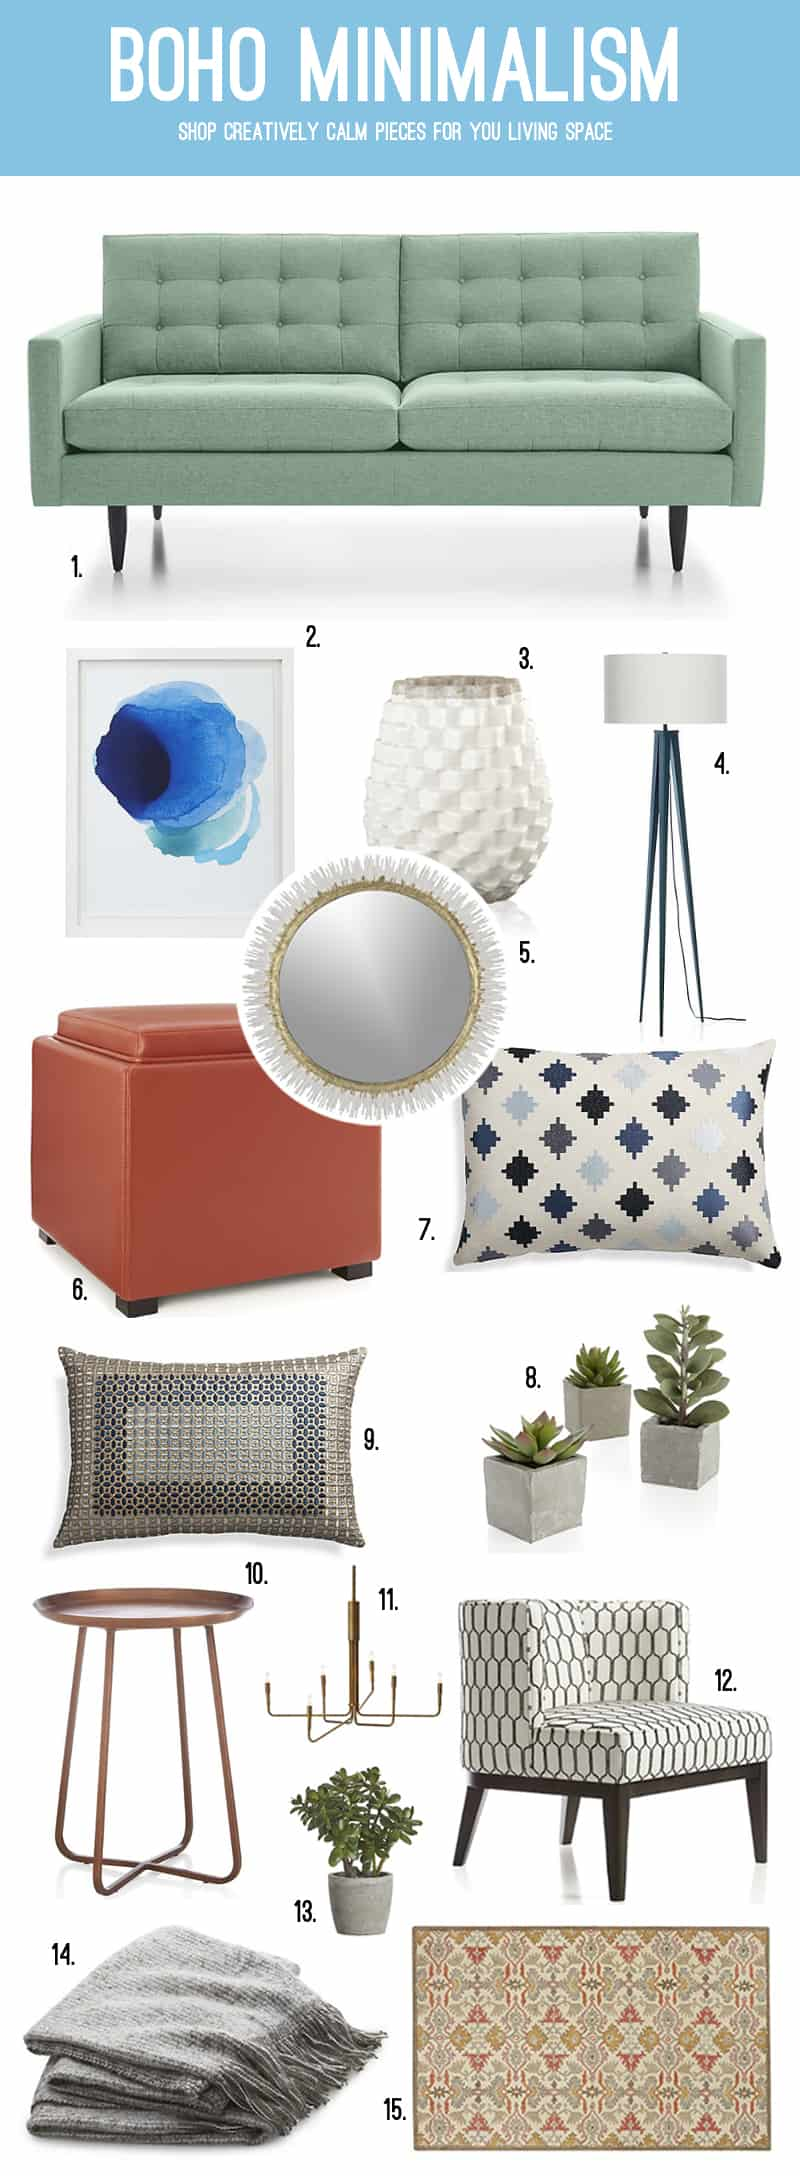 crate-barrel-wedding-registry-boho-living-minimal-geo